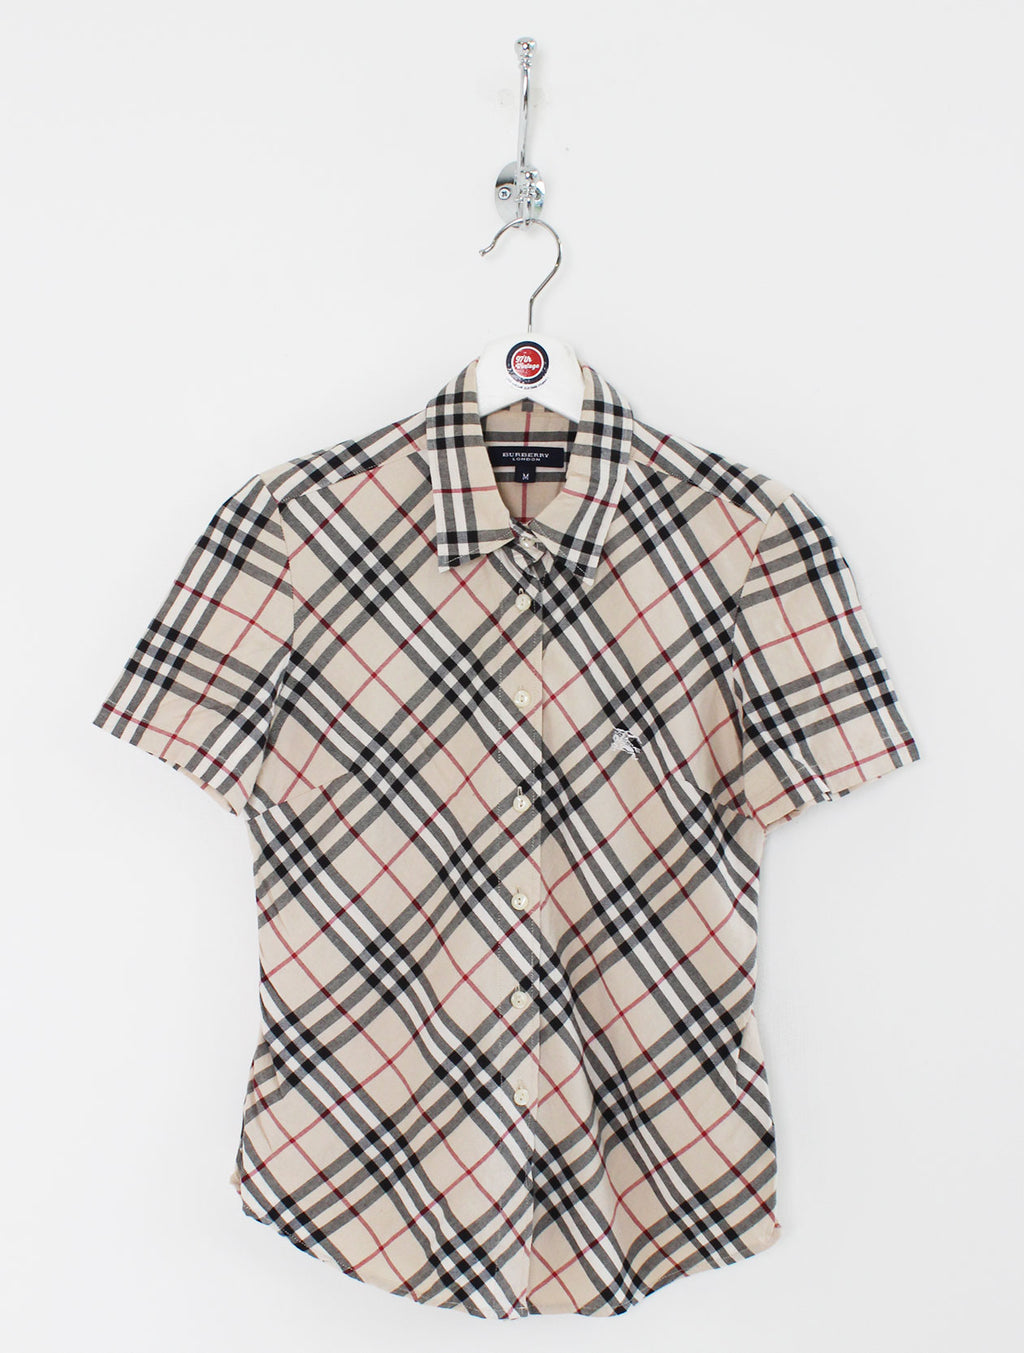 Women's Burberry Shirt (S)